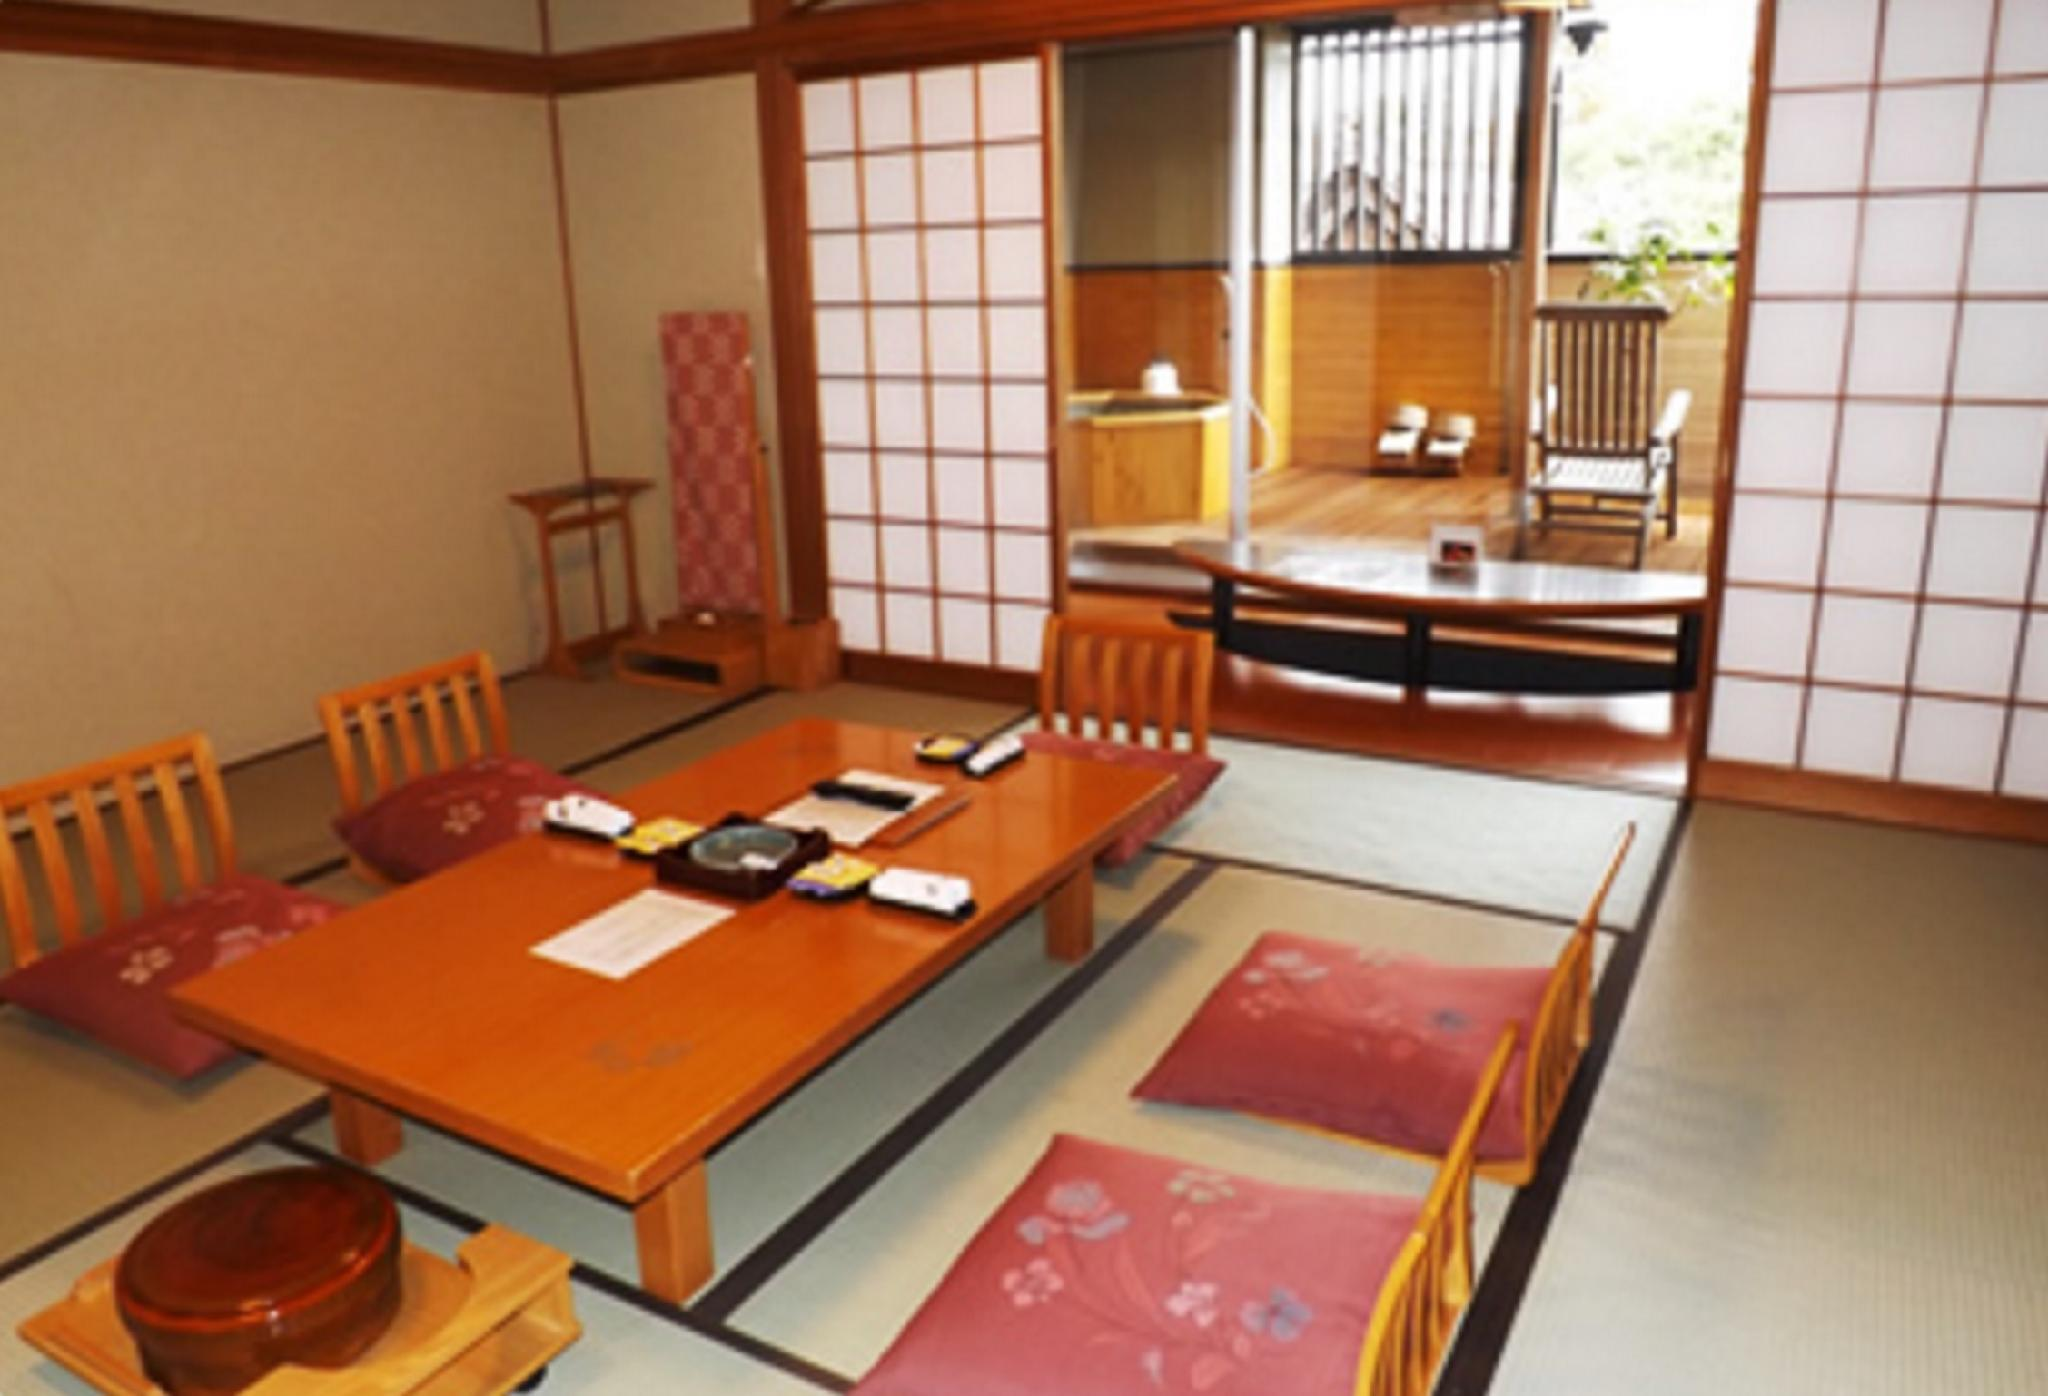 和室(6名・露天風呂あり) (Japanese Style Room for 6 People with Open-Air Bath)